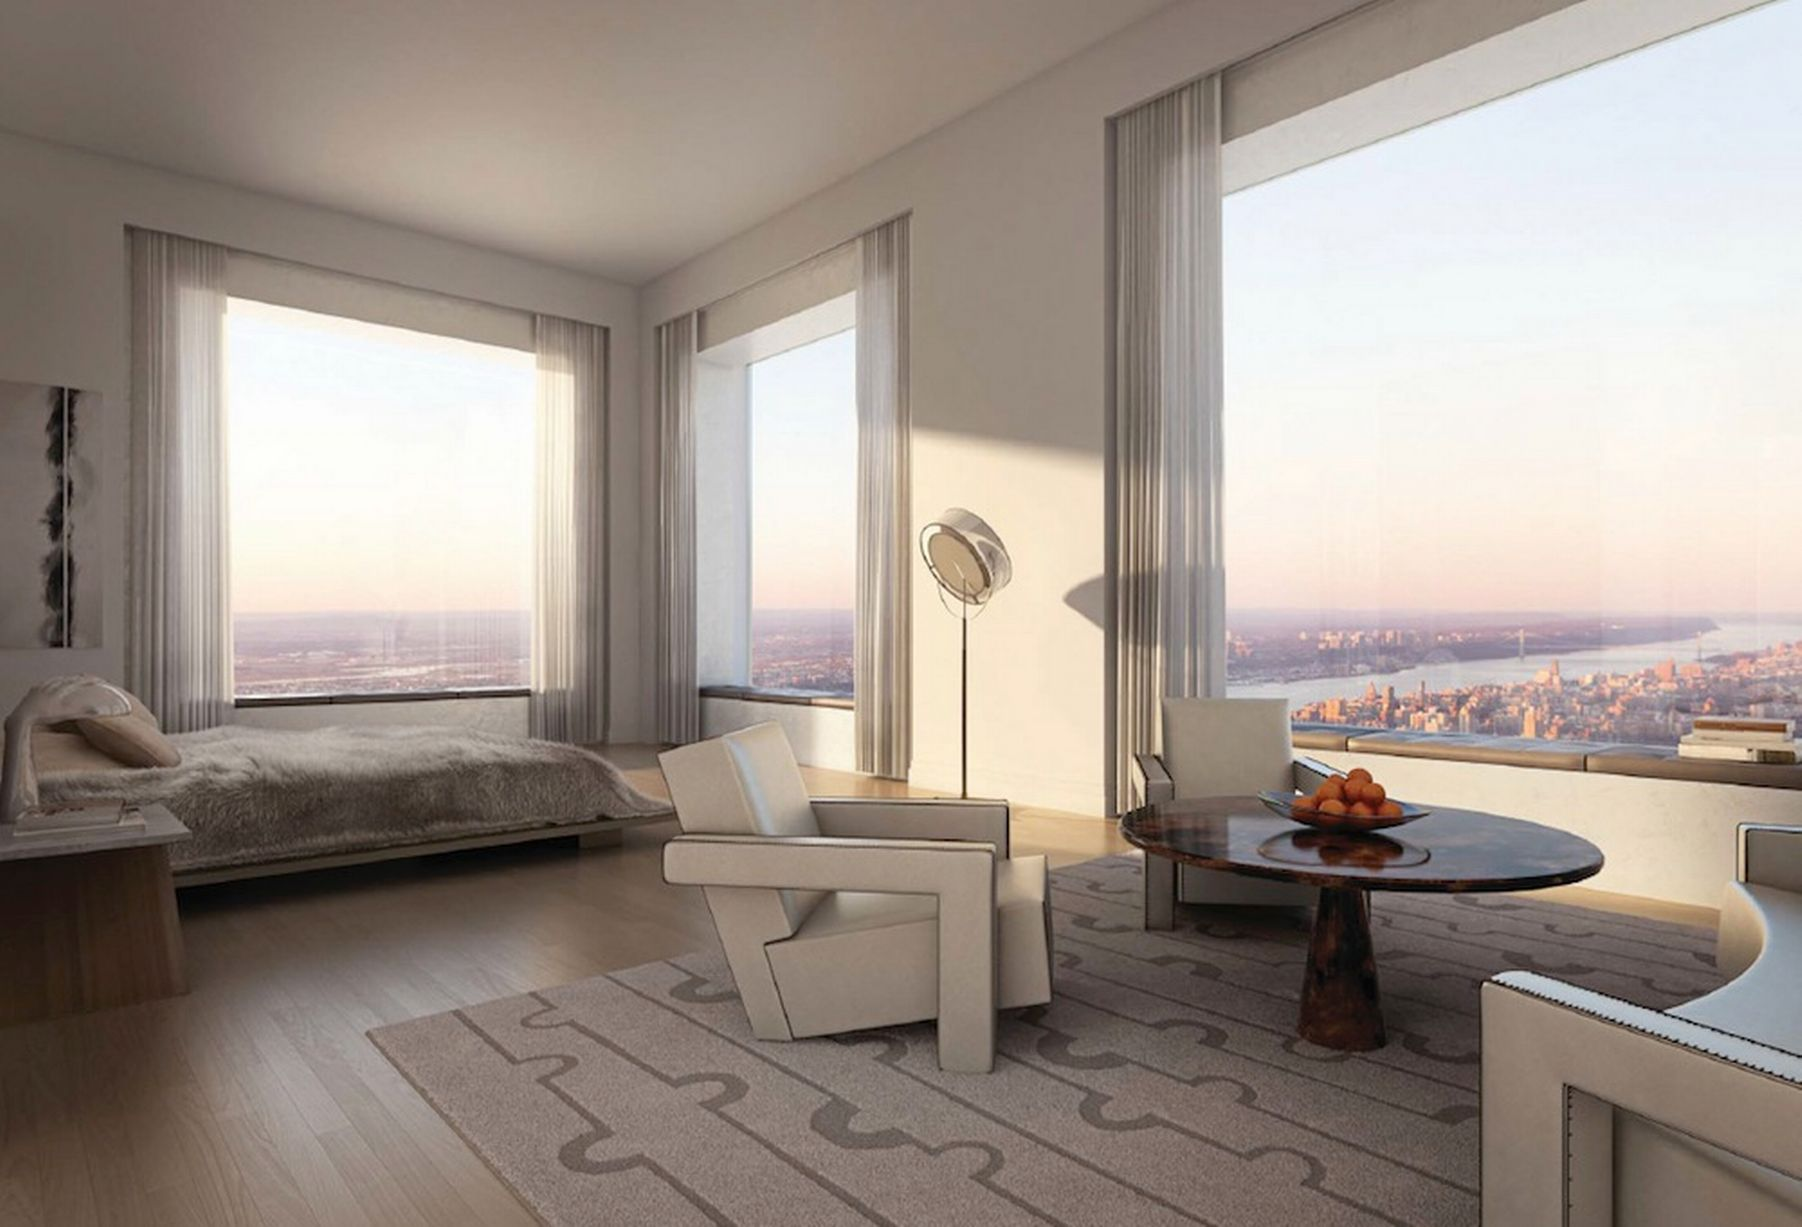 $95 Million Dollar Luxury Penthouse in New York-07